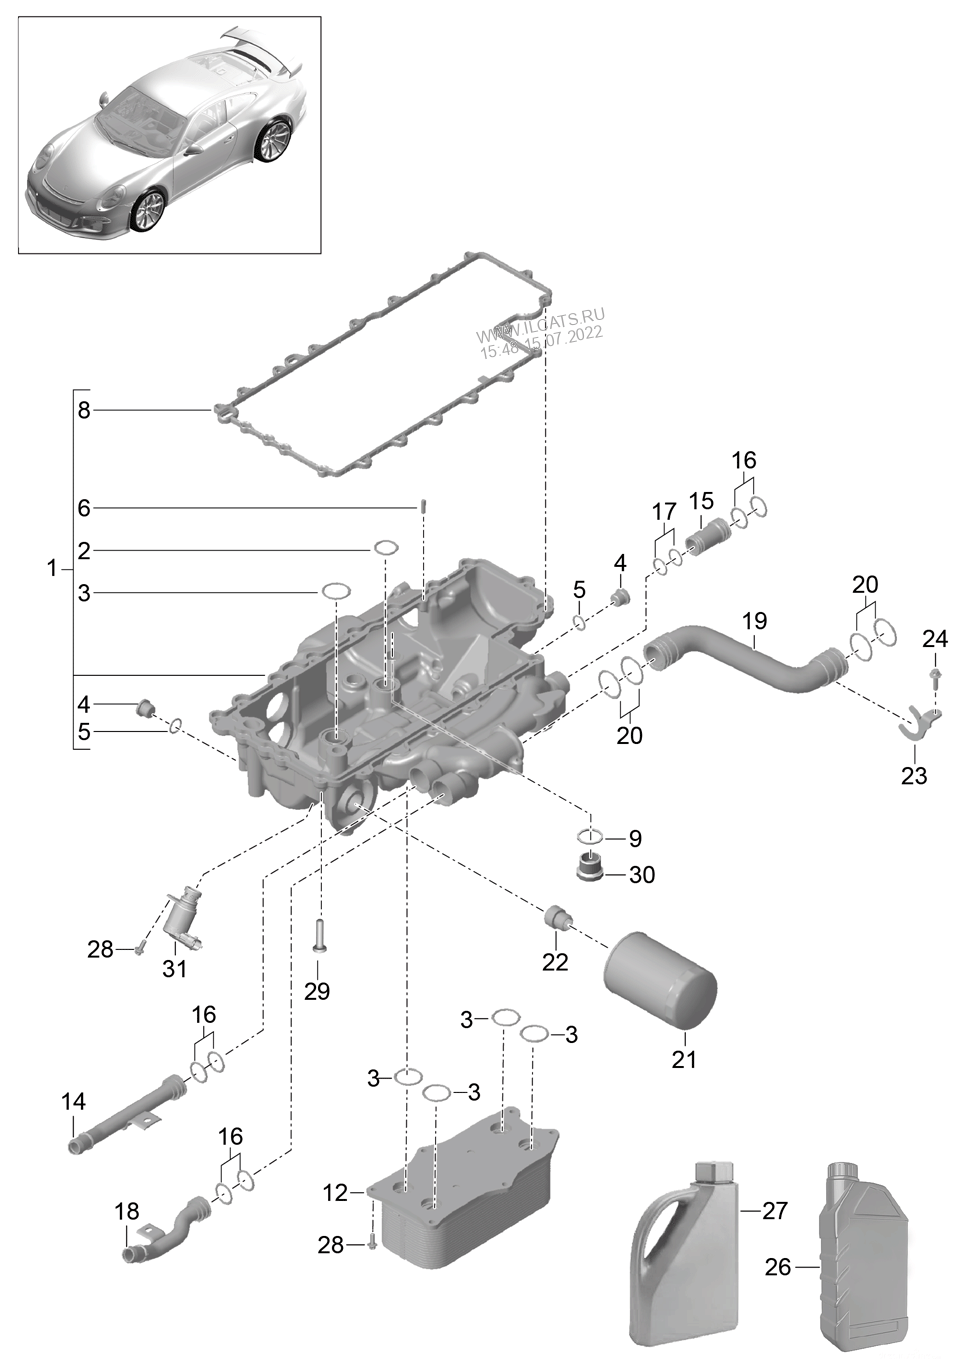 porsche 991 engine diagram oil filter console porsche 991 r gt3 gt3  oil filter console porsche 991 r gt3